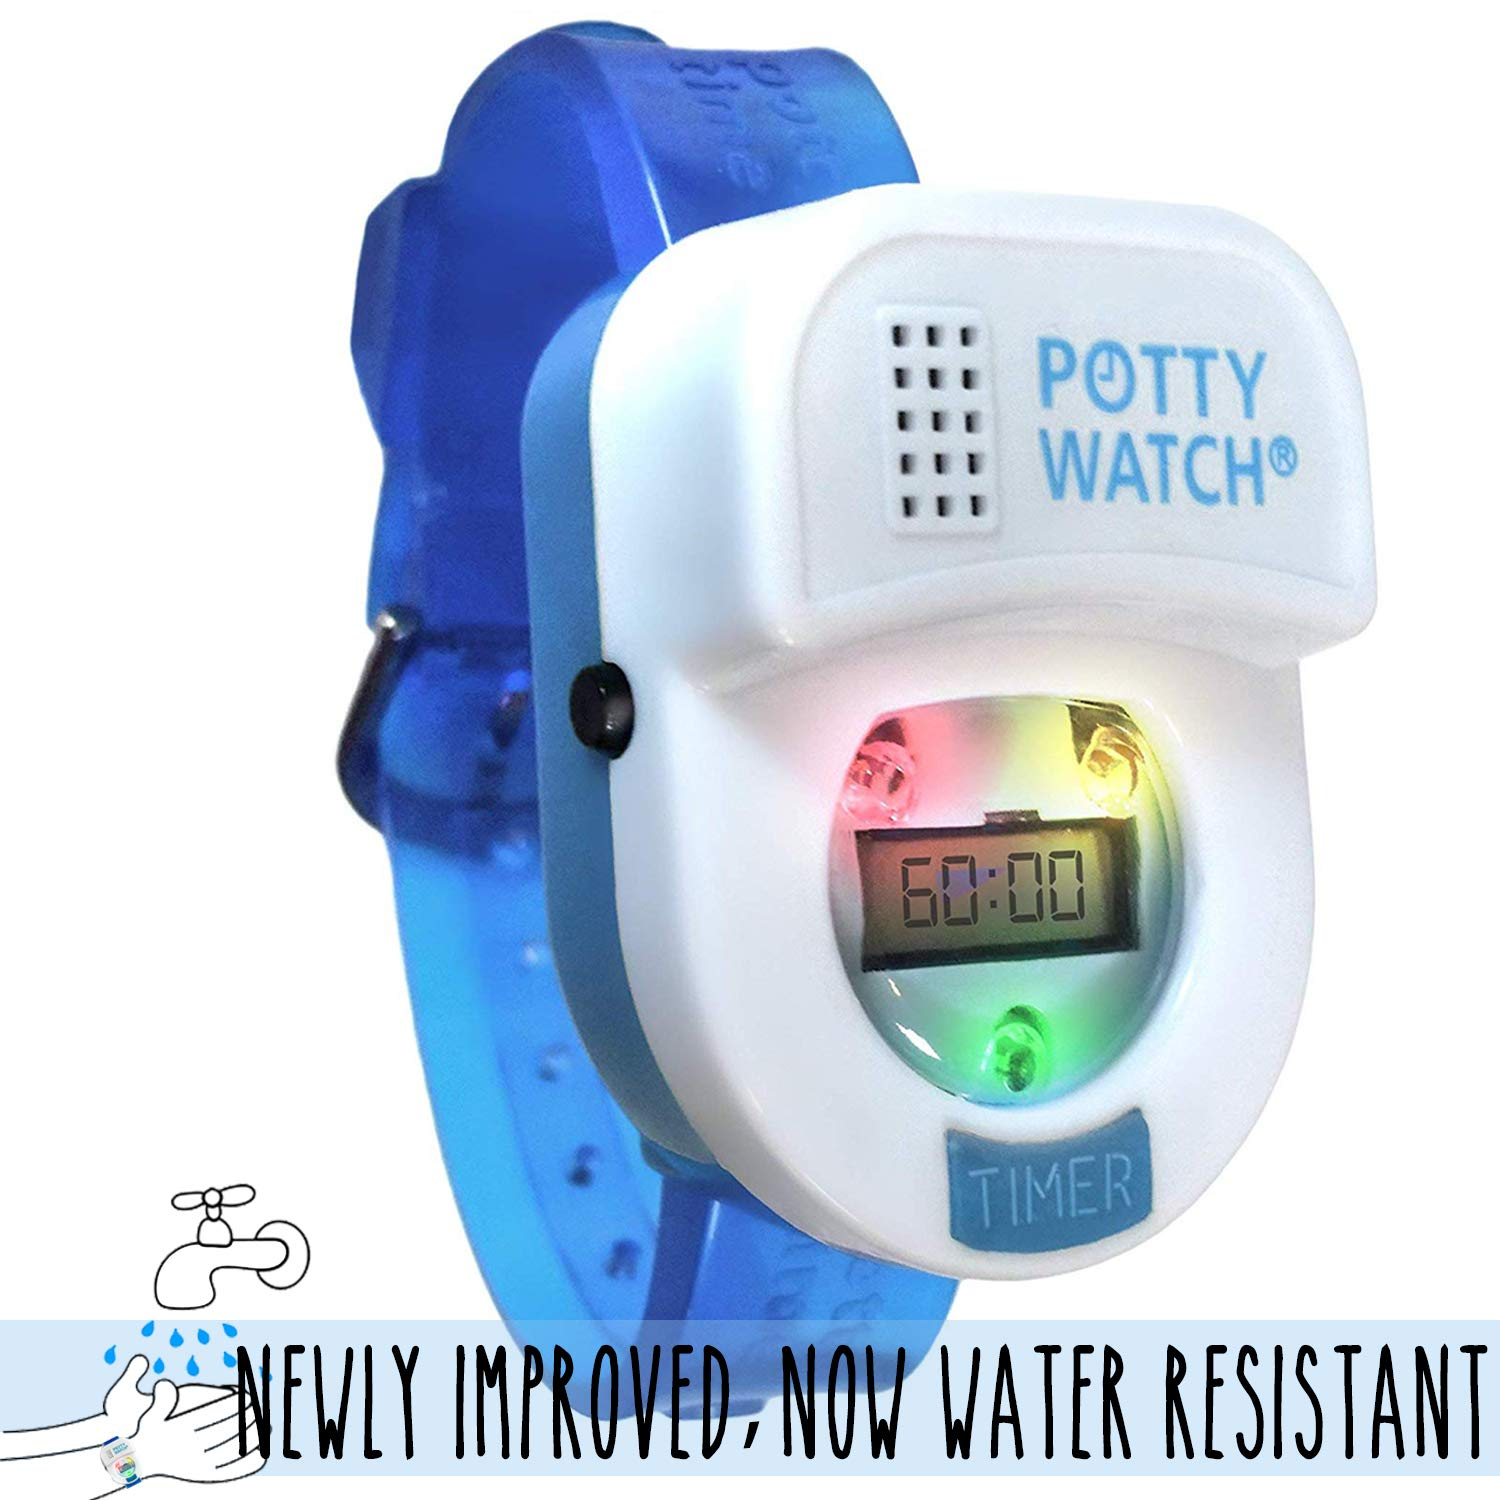 Potty Time: The Original Potty Training Watch | 2019 Version=Now Water Resistant | Set Automatic Timers + Music & Lights for Kid Friendly Reminders, ...